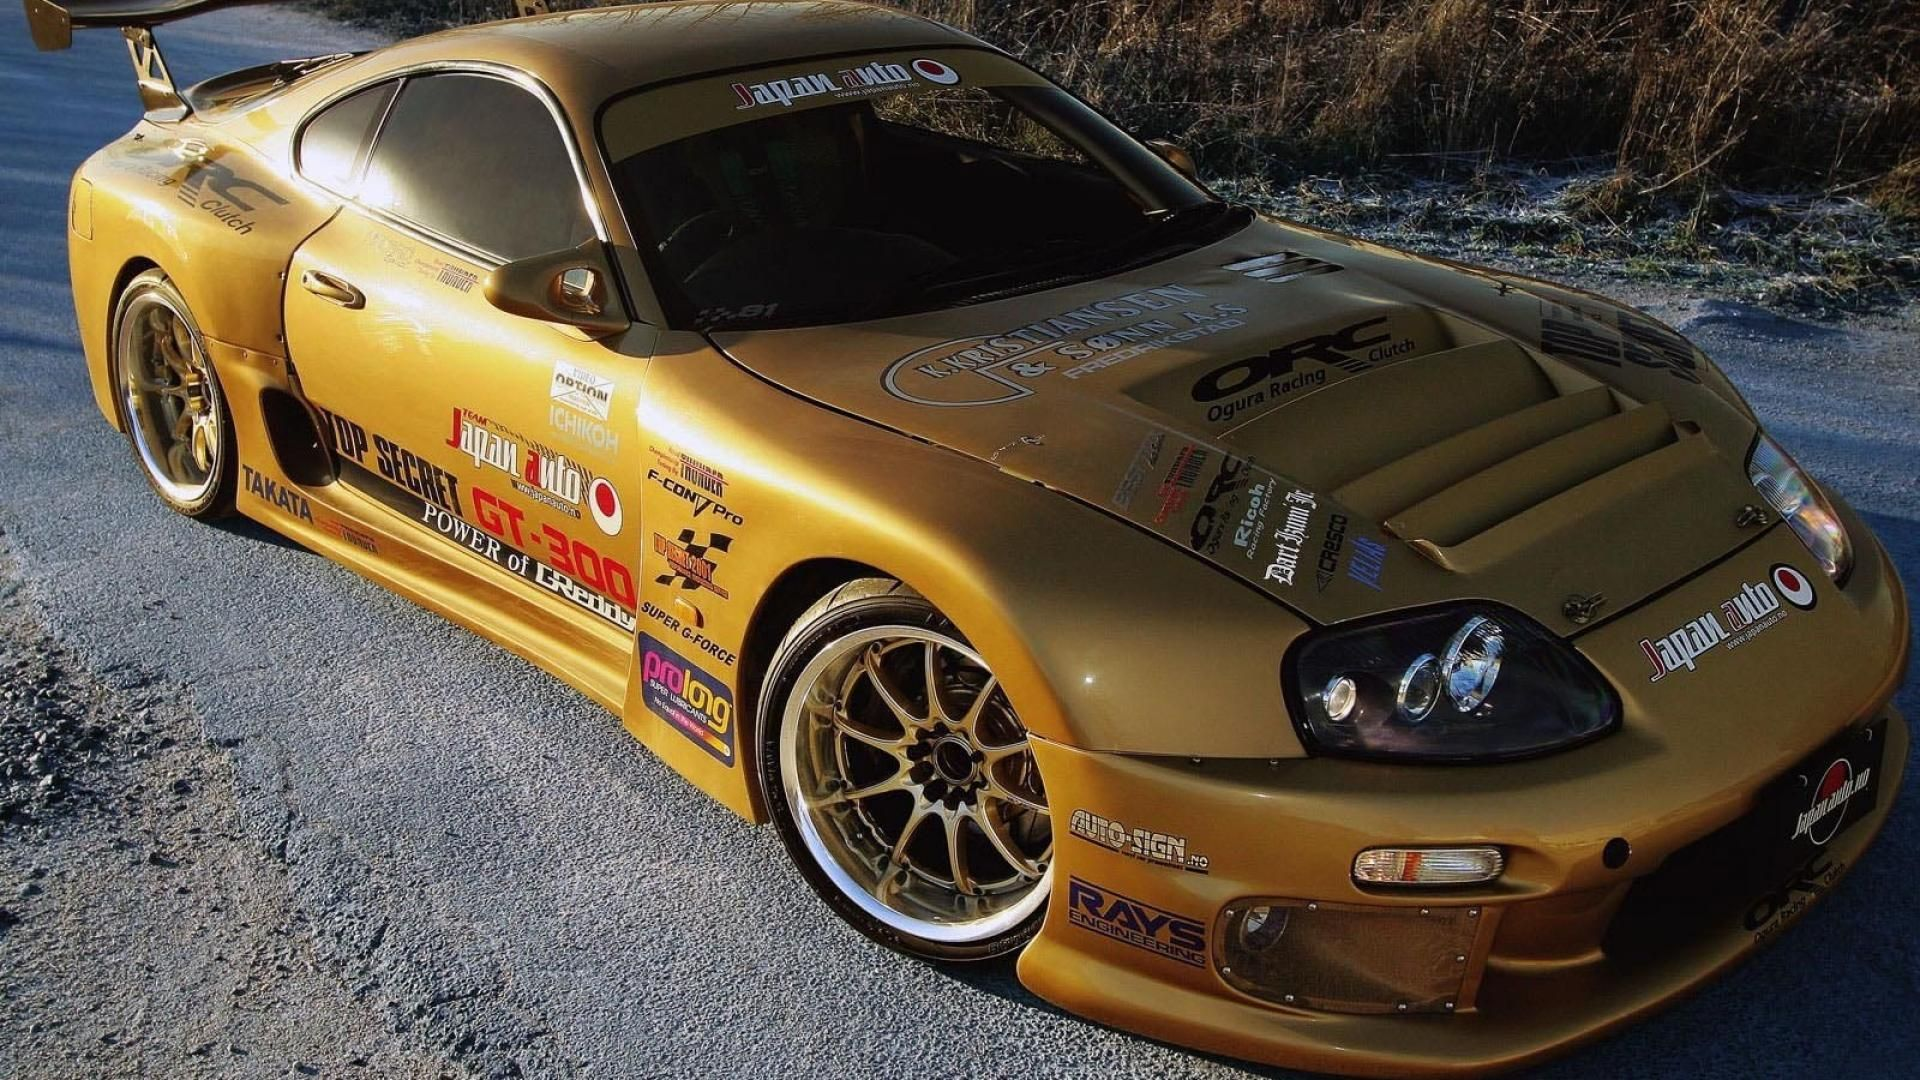 Modif toyota supra hq wallpaper toyota hq modif supra